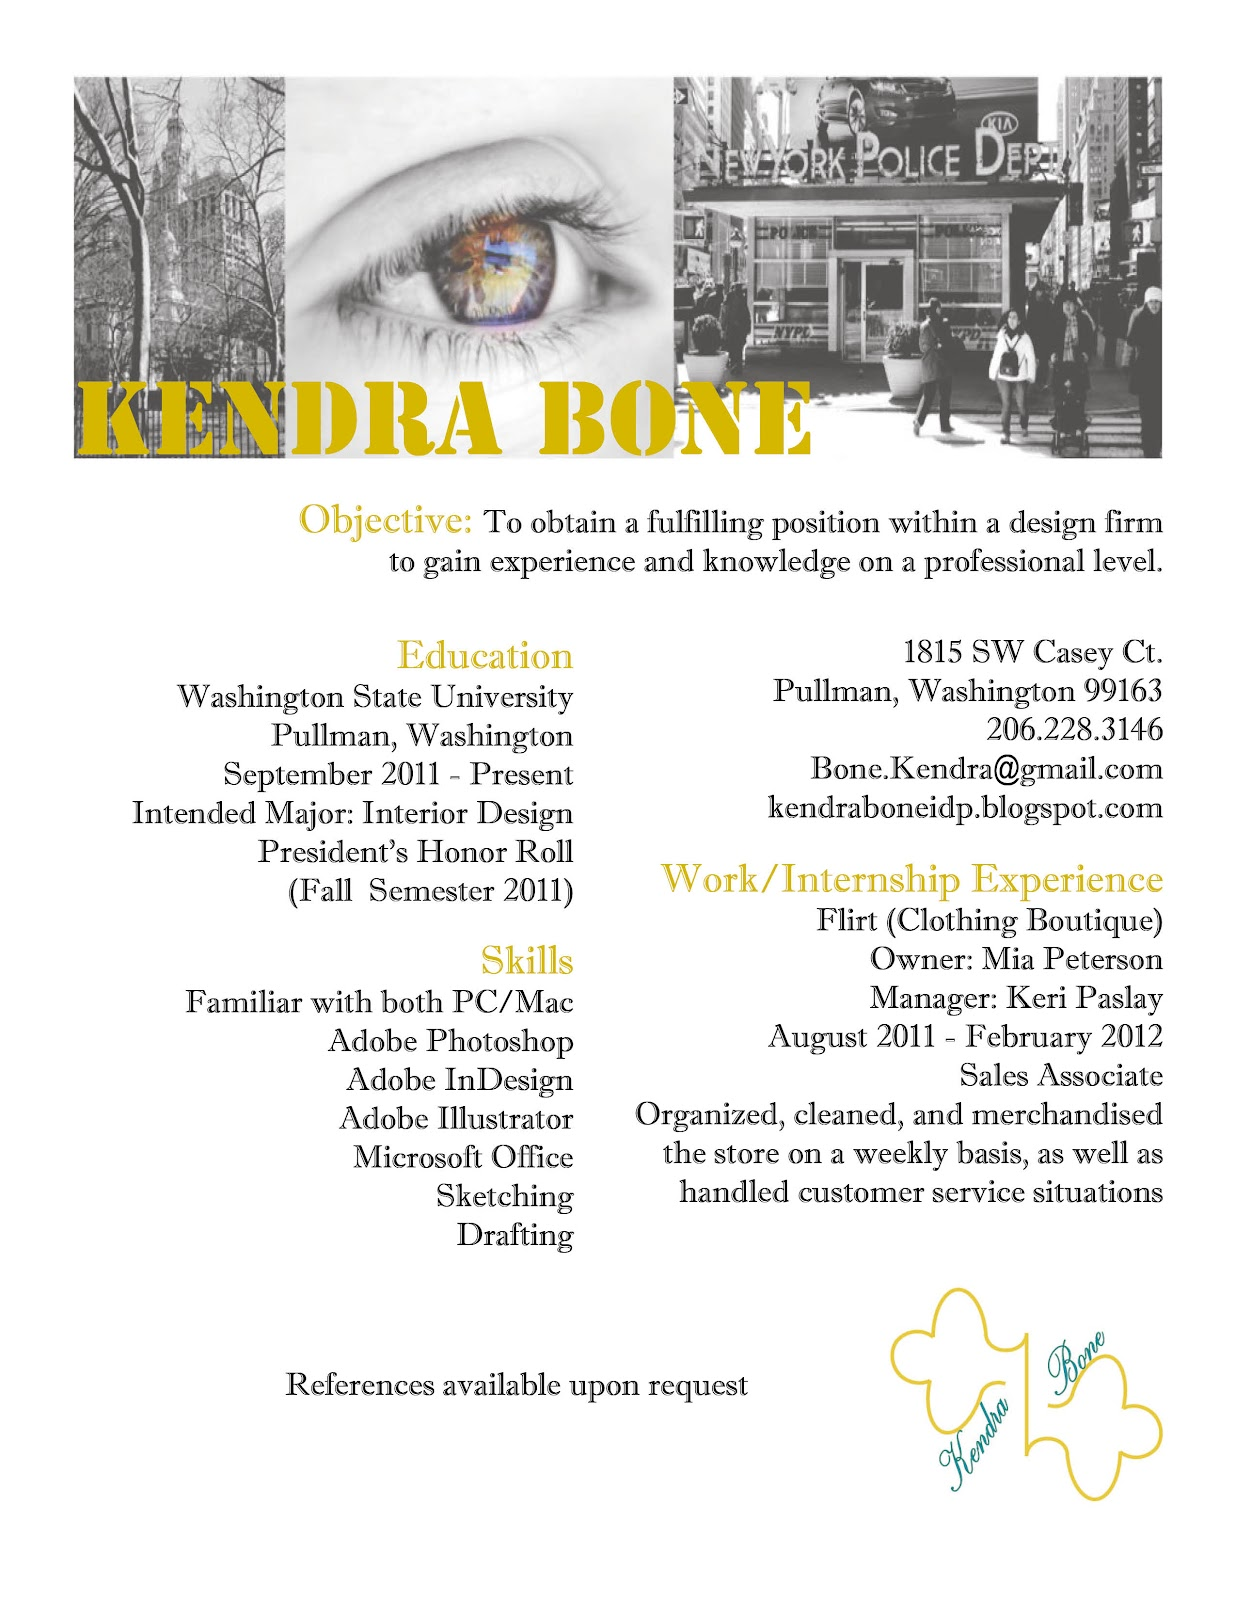 designing a resume rather kendra bones interior design portfolio resume